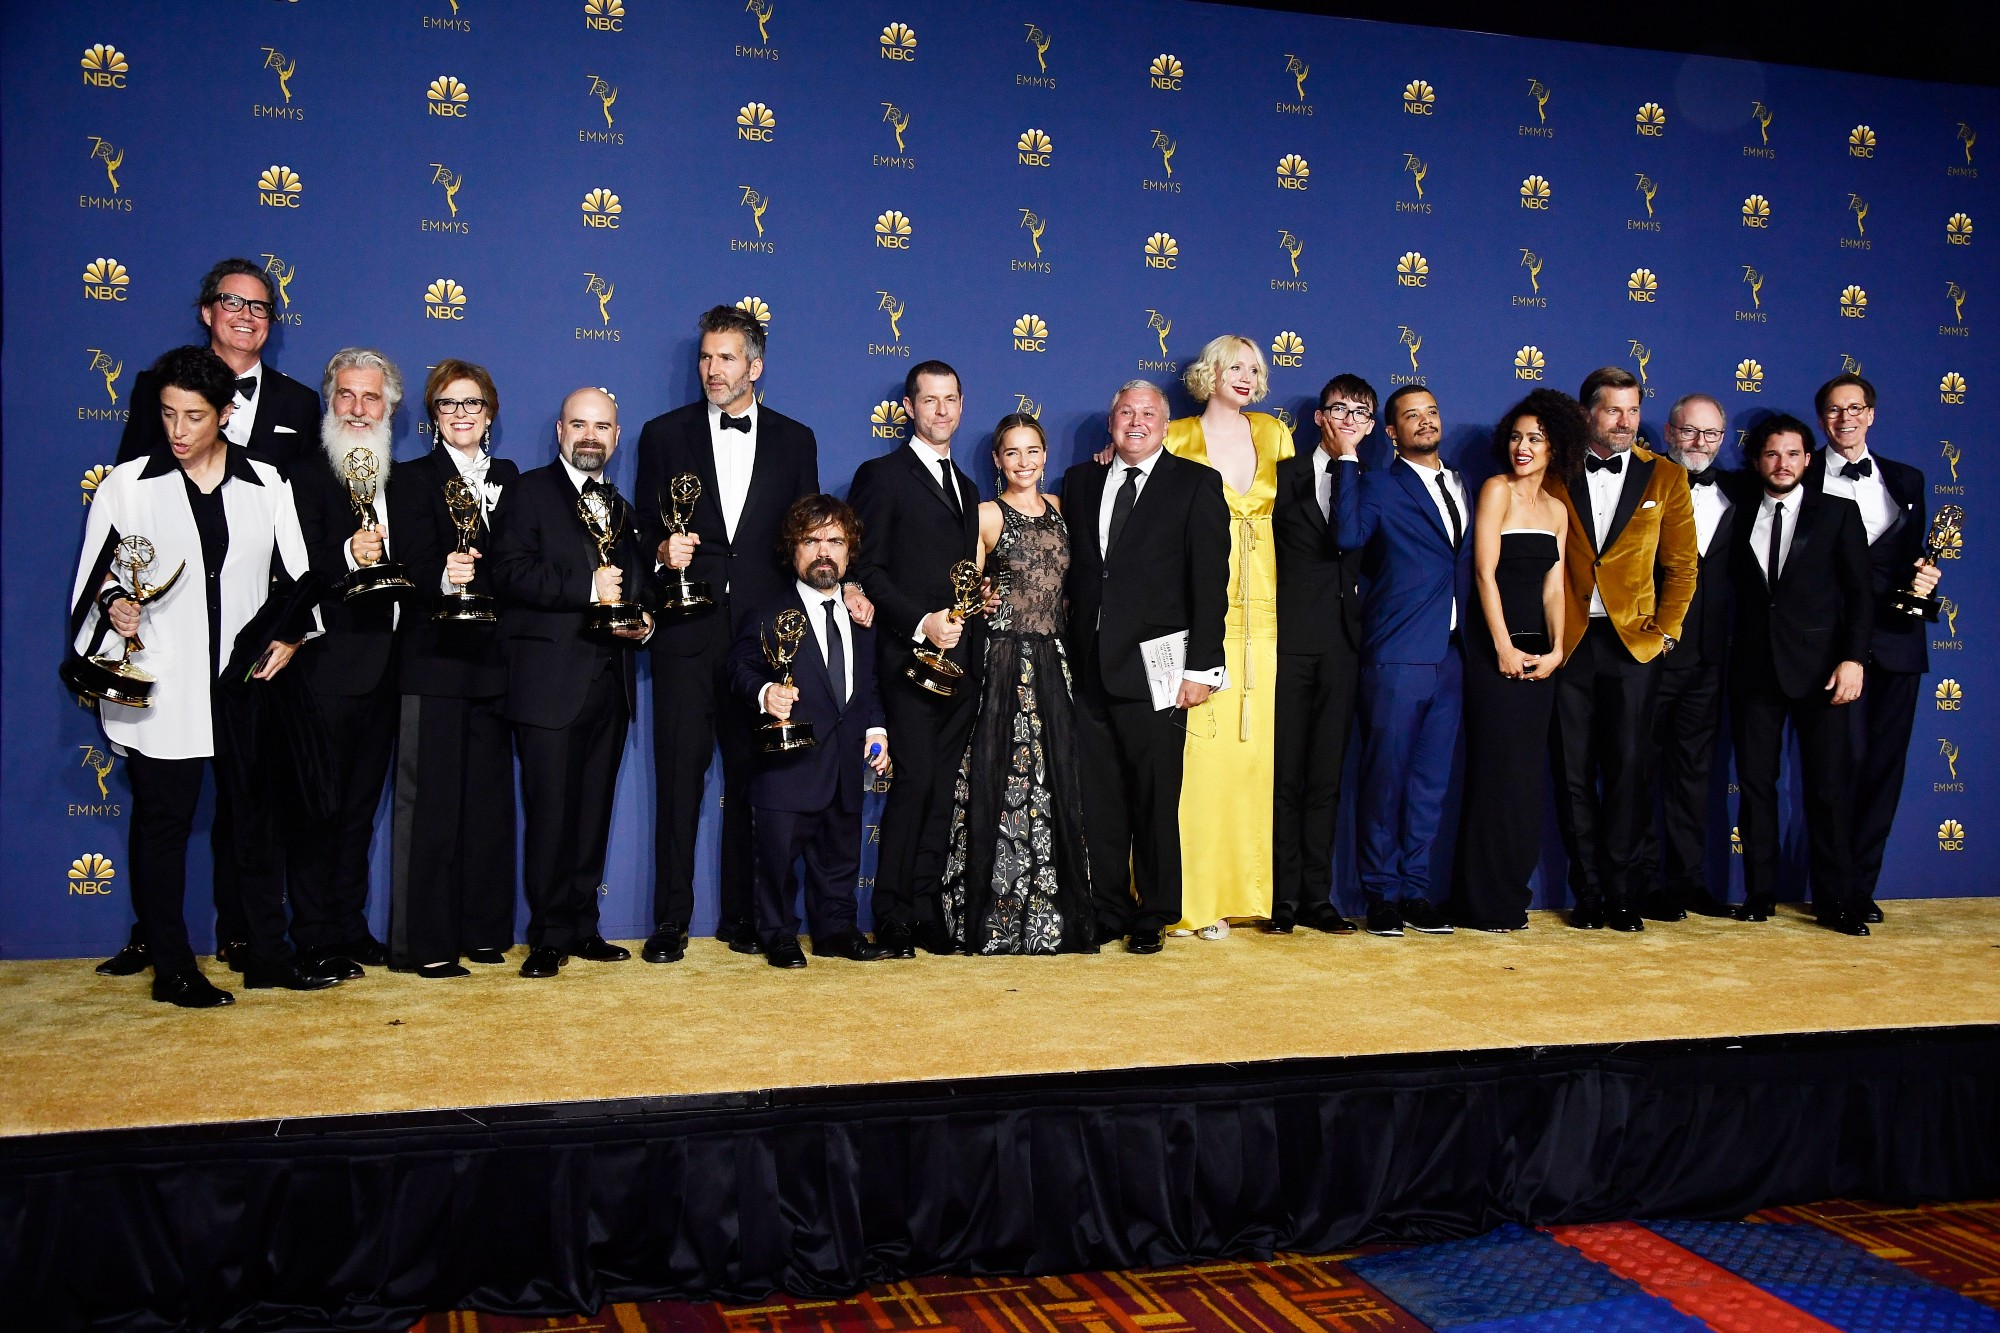 The cast and crew of 'Game of Thrones' at the 70th Emmy Awards.